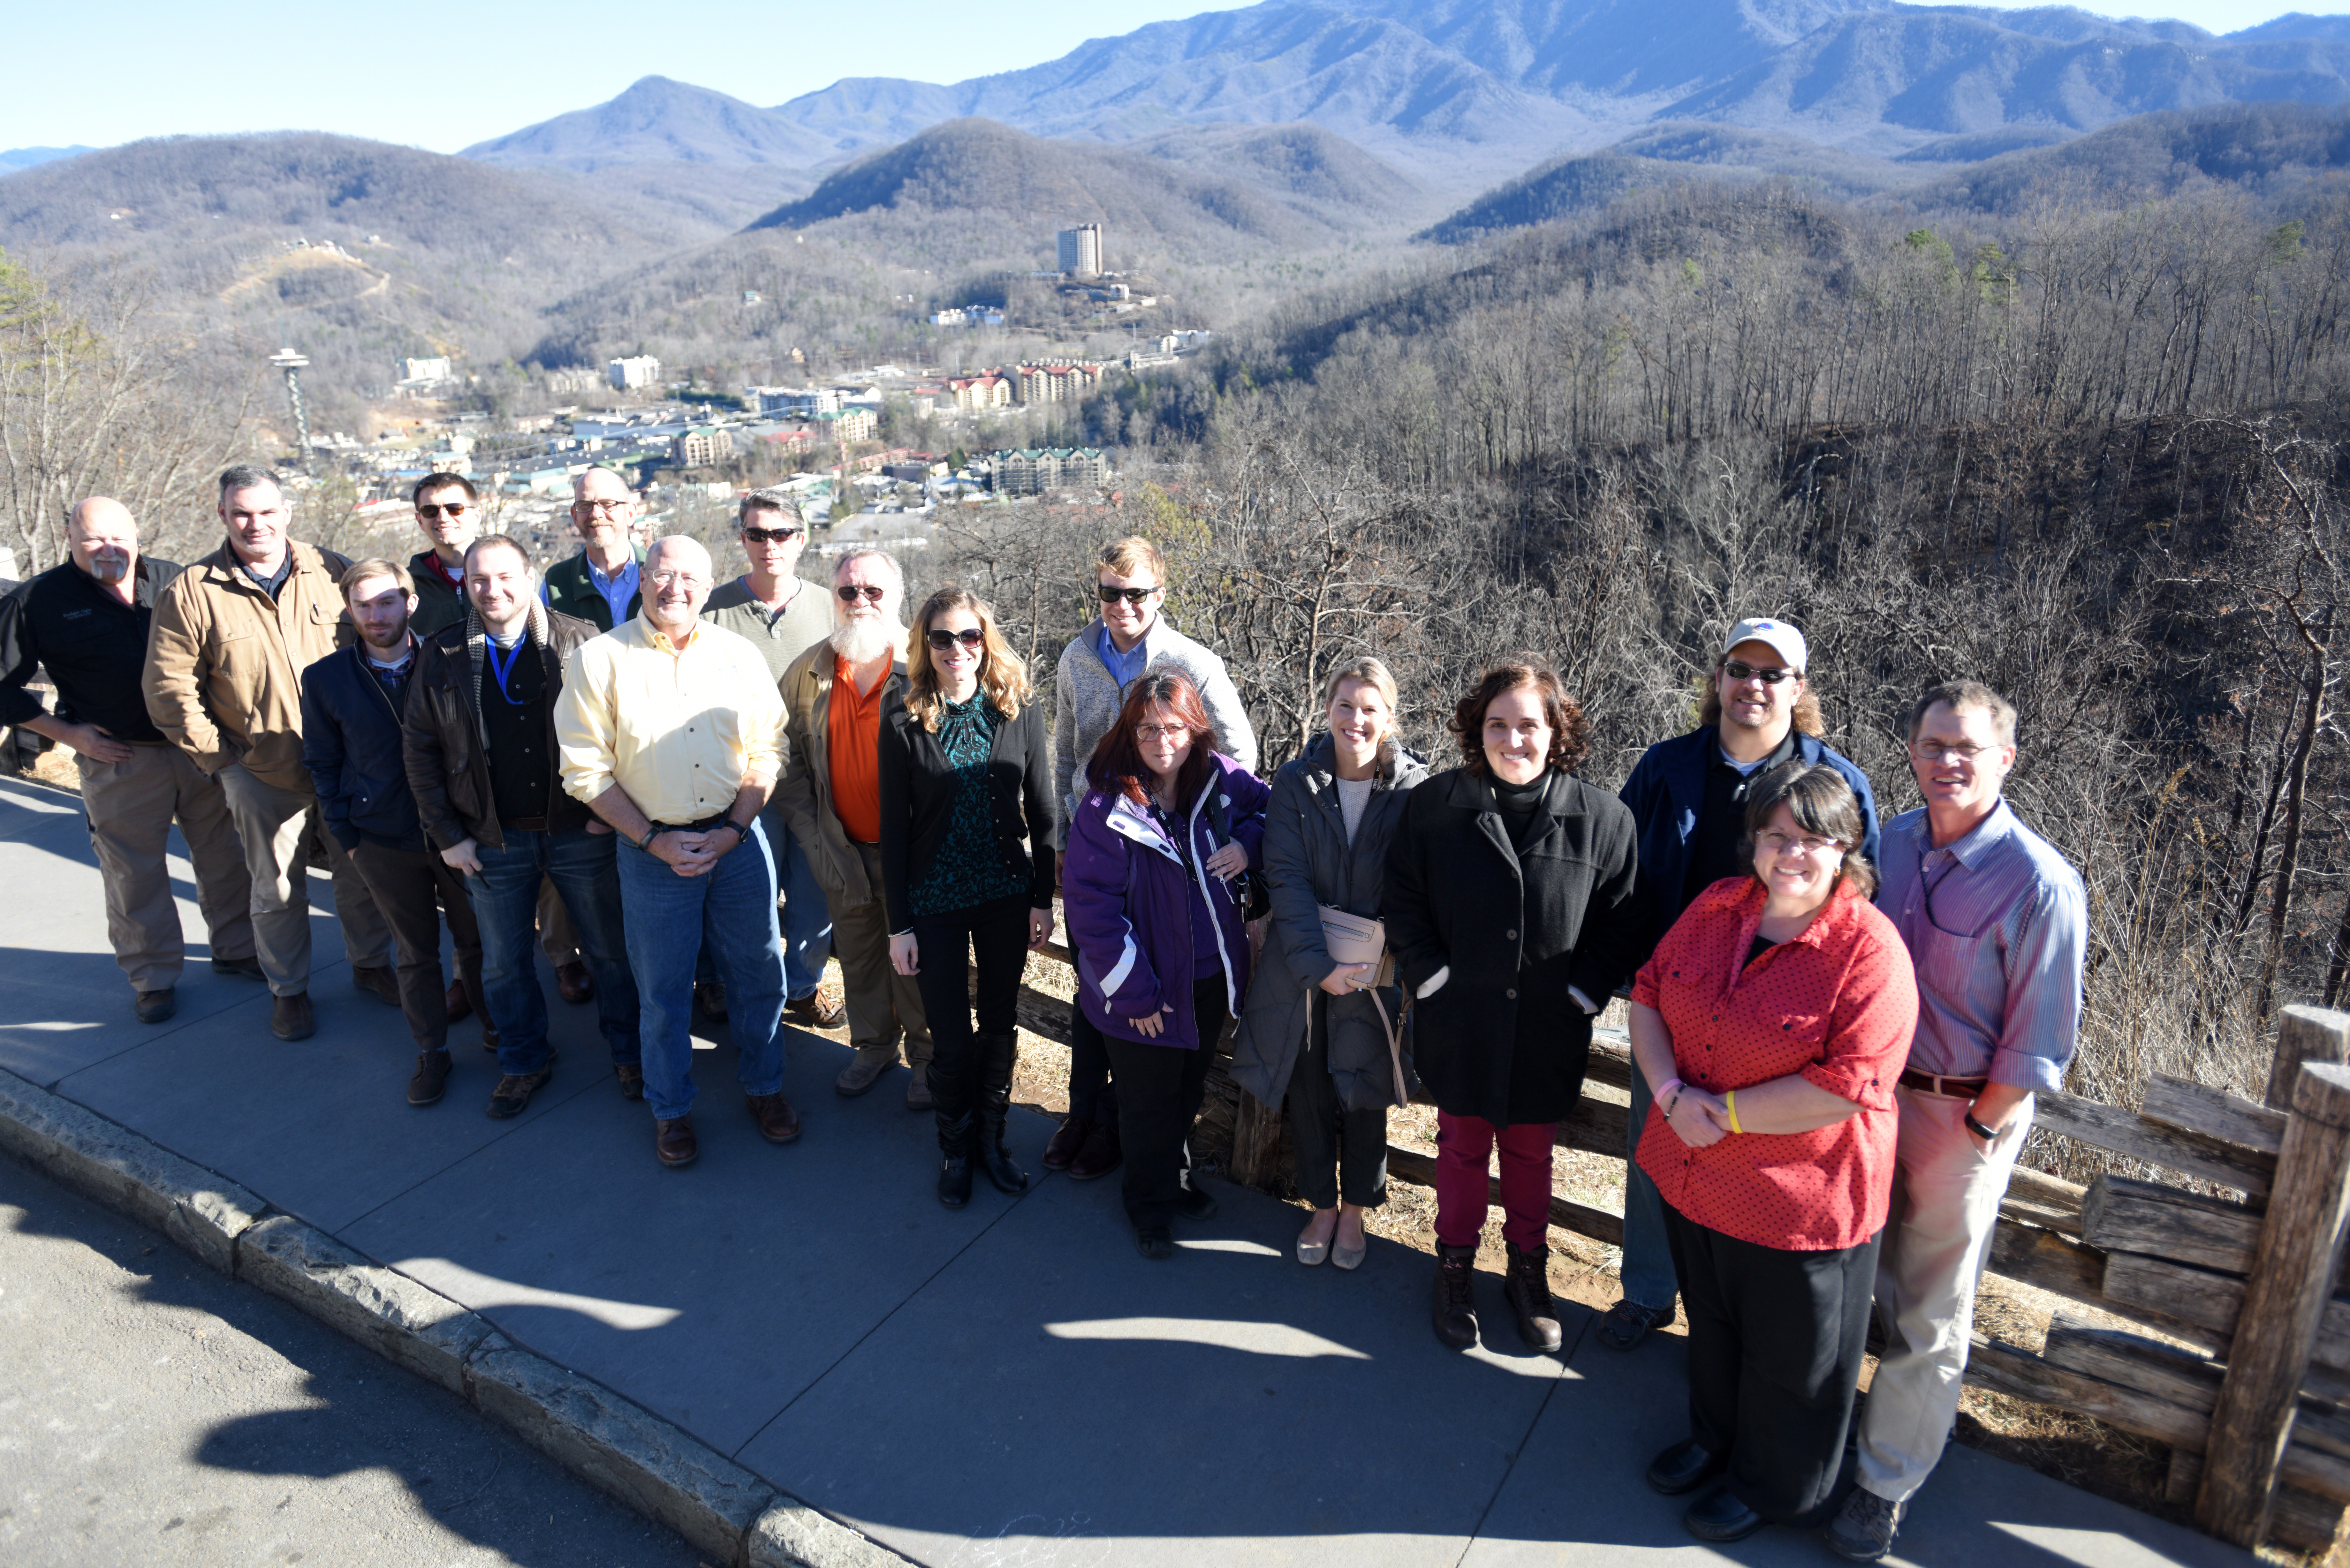 Members of Tennessee Silver Jackets pose at the Gatlinburg Bypass Overlook overlooking Gatlinburg, Tenn., Jan. 25, 2018. The team toured the area and received a briefing on the wildfires that moved through Sevier County and city of Gatlinburg in November 2016. (Photo by Lee Roberts)